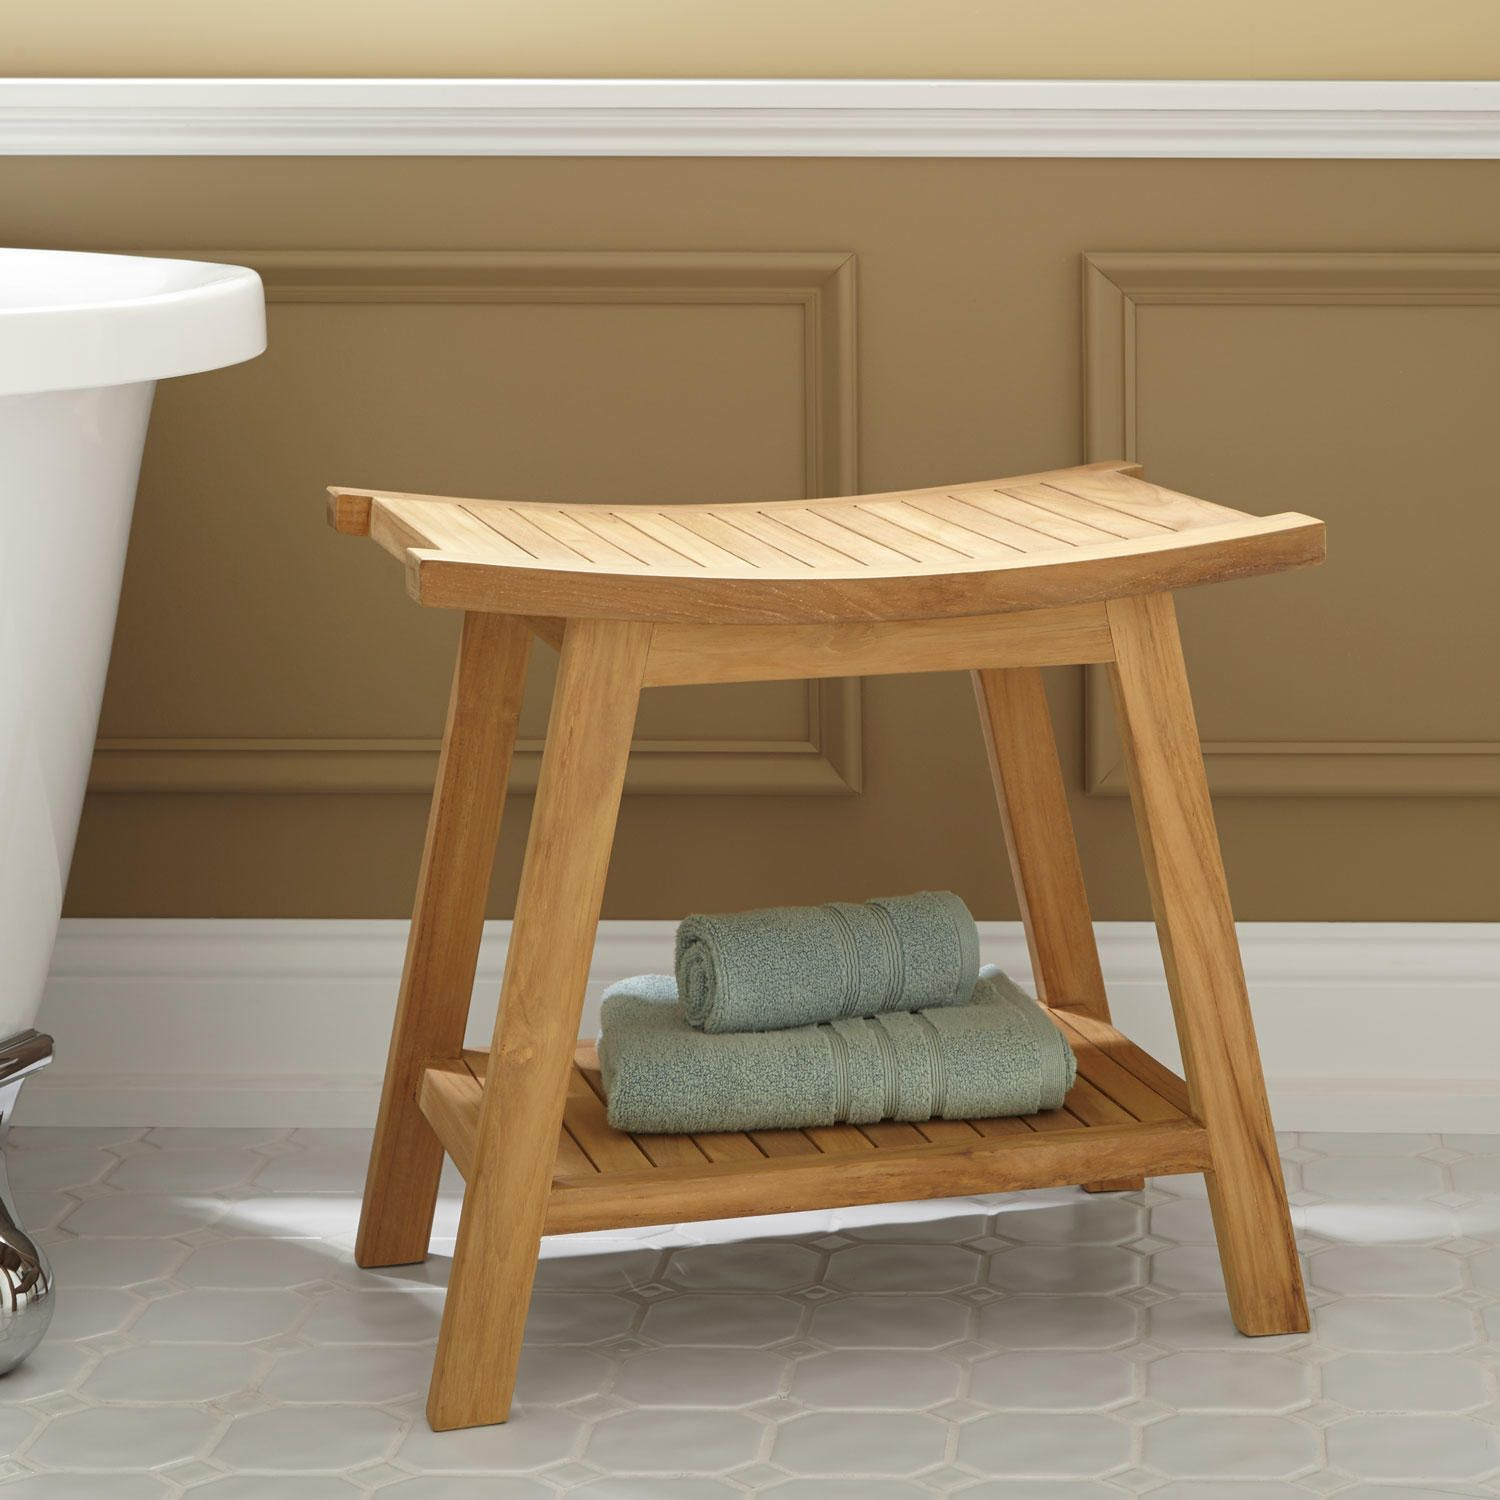 Freestanding Bamboo Slotted Bathroom Stool in 2018 | Bathroom Board ...